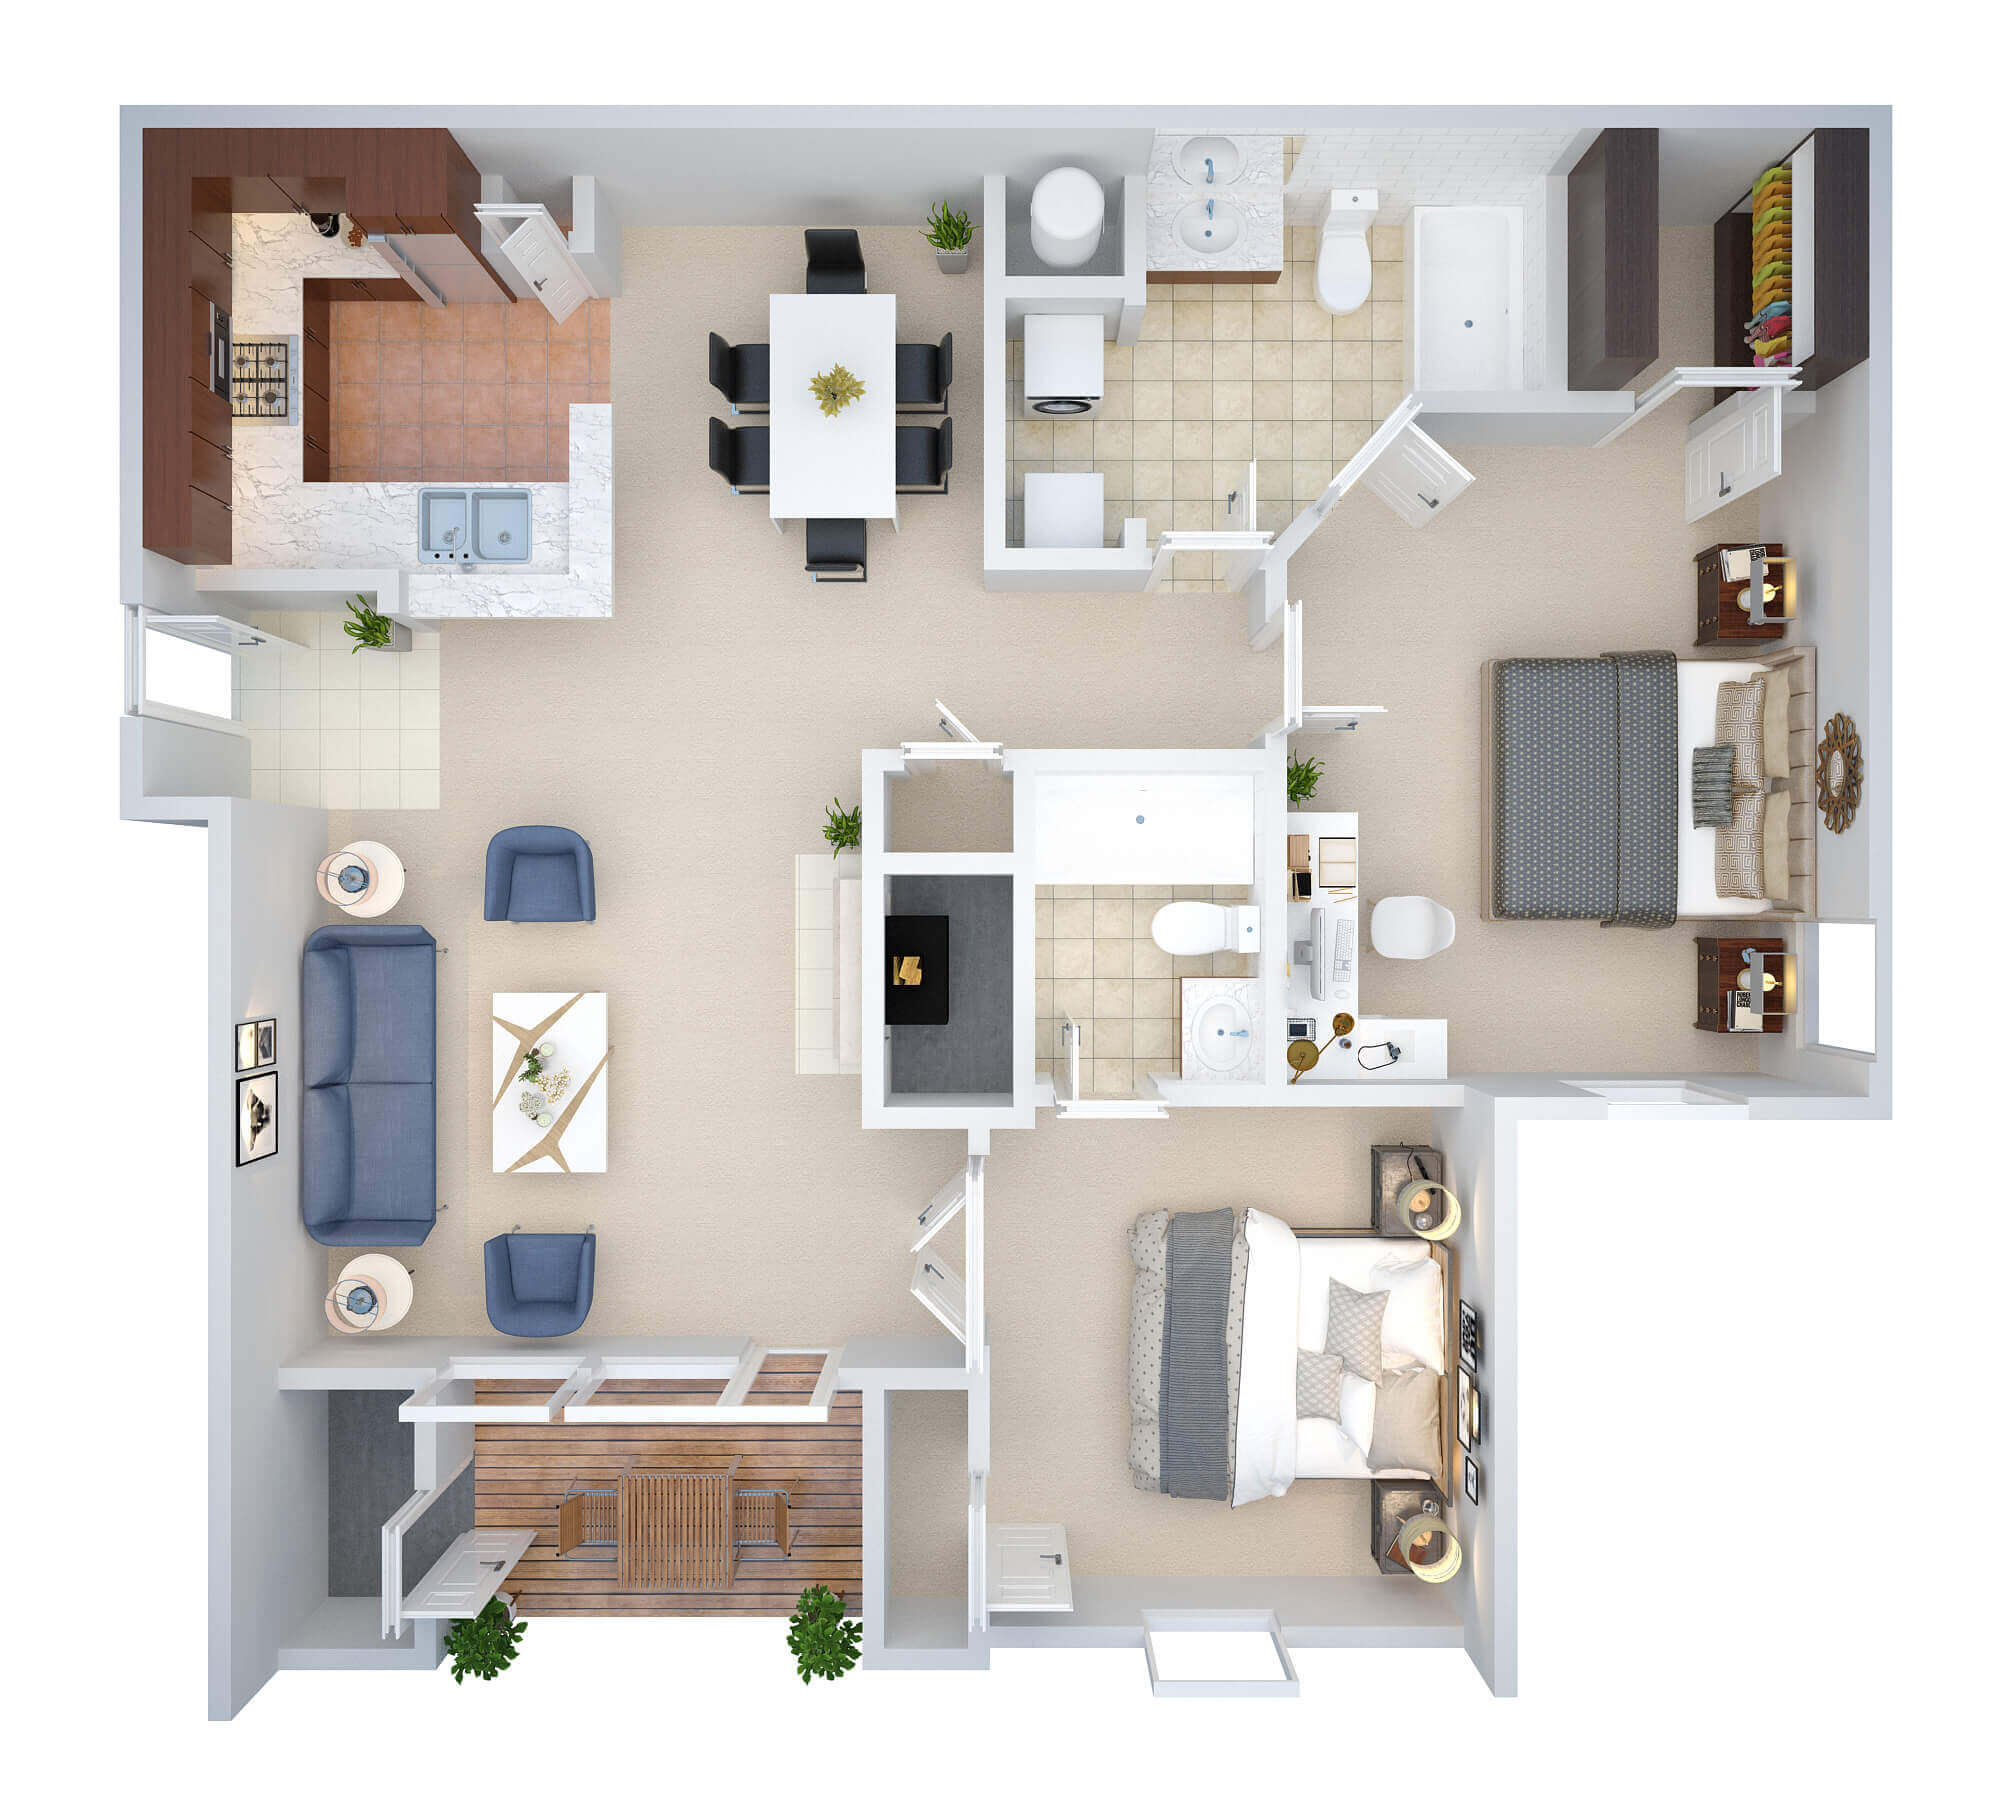 Benefits advantages of floor plans in real estate for Floor plans for real estate marketing